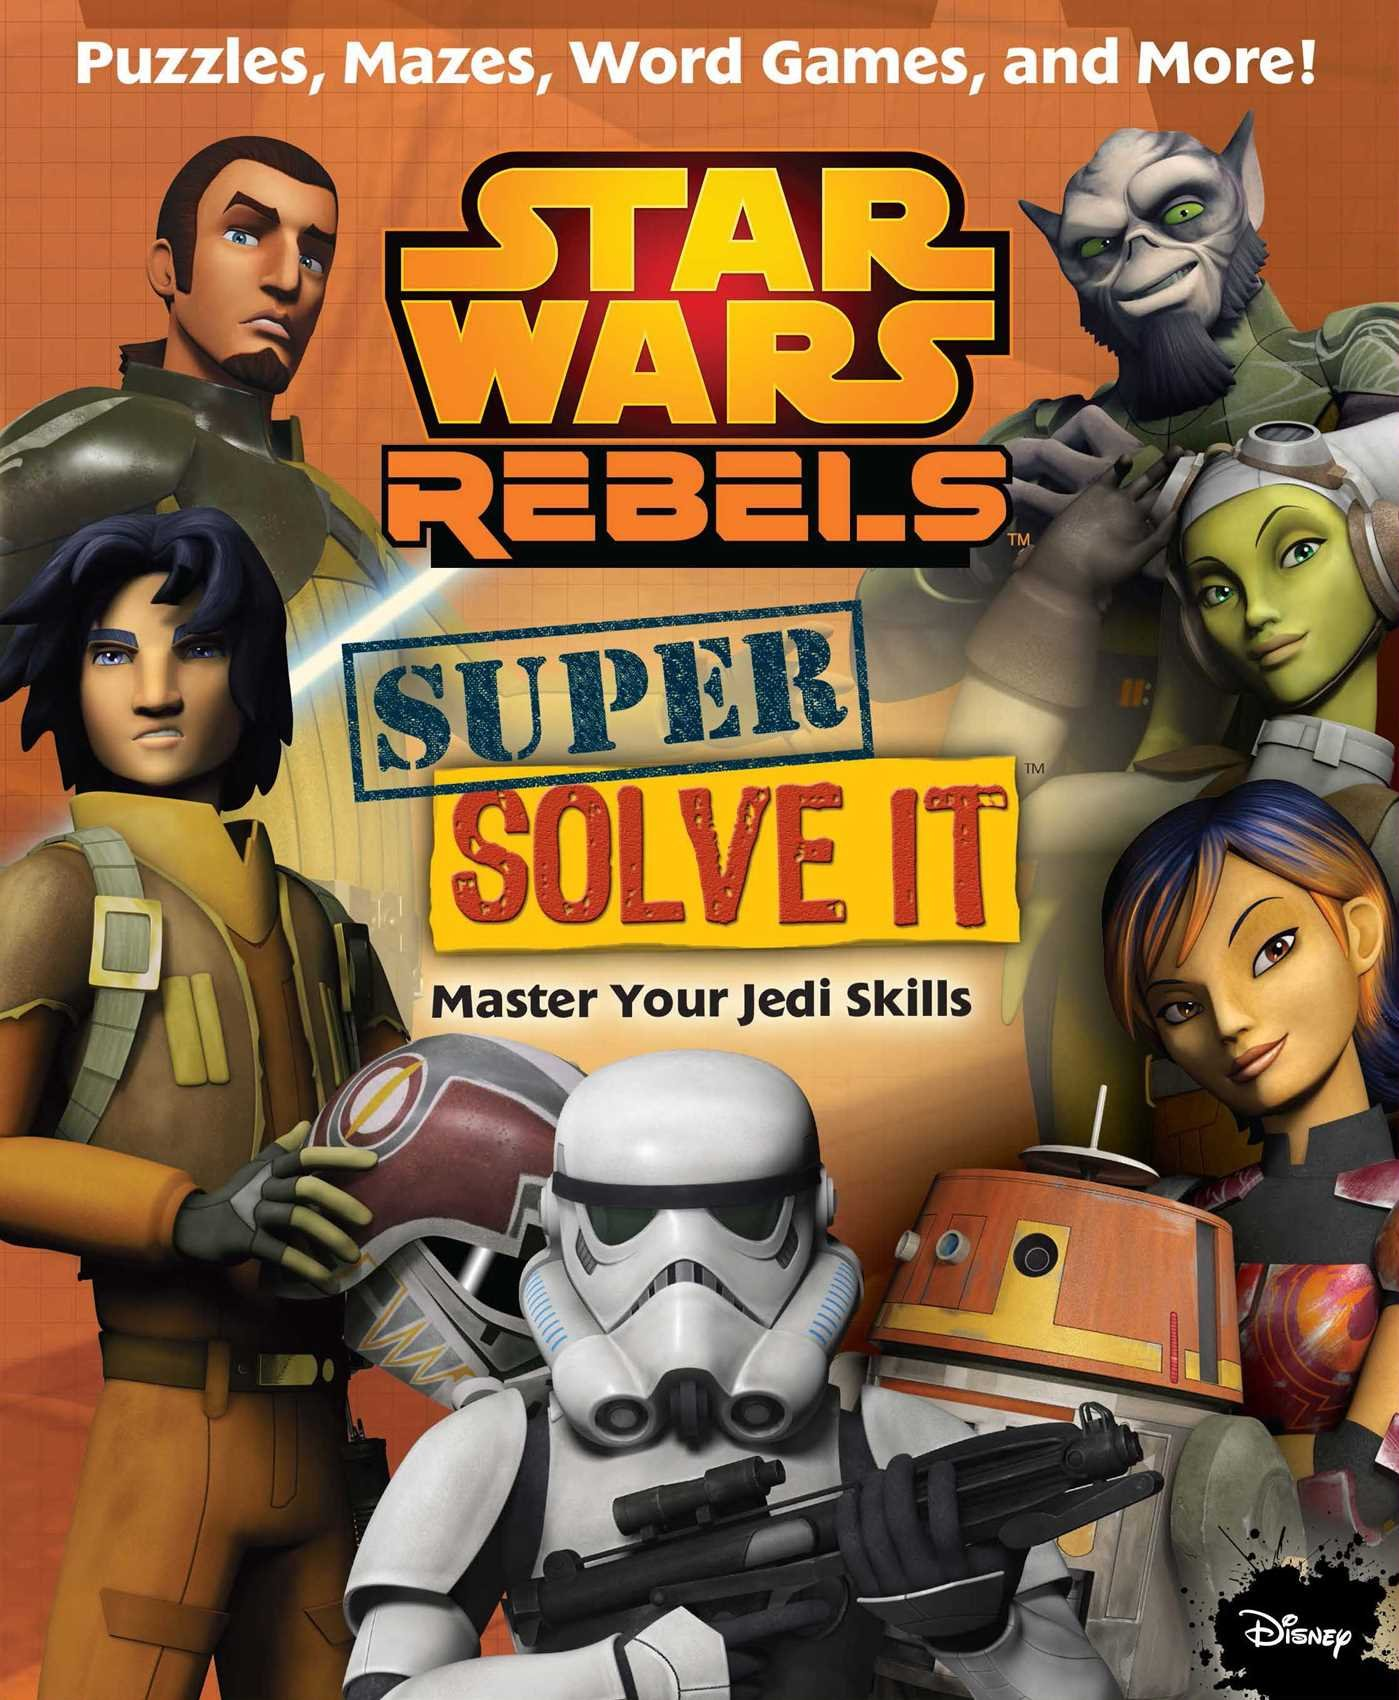 Star Wars Rebels Super Solve-It